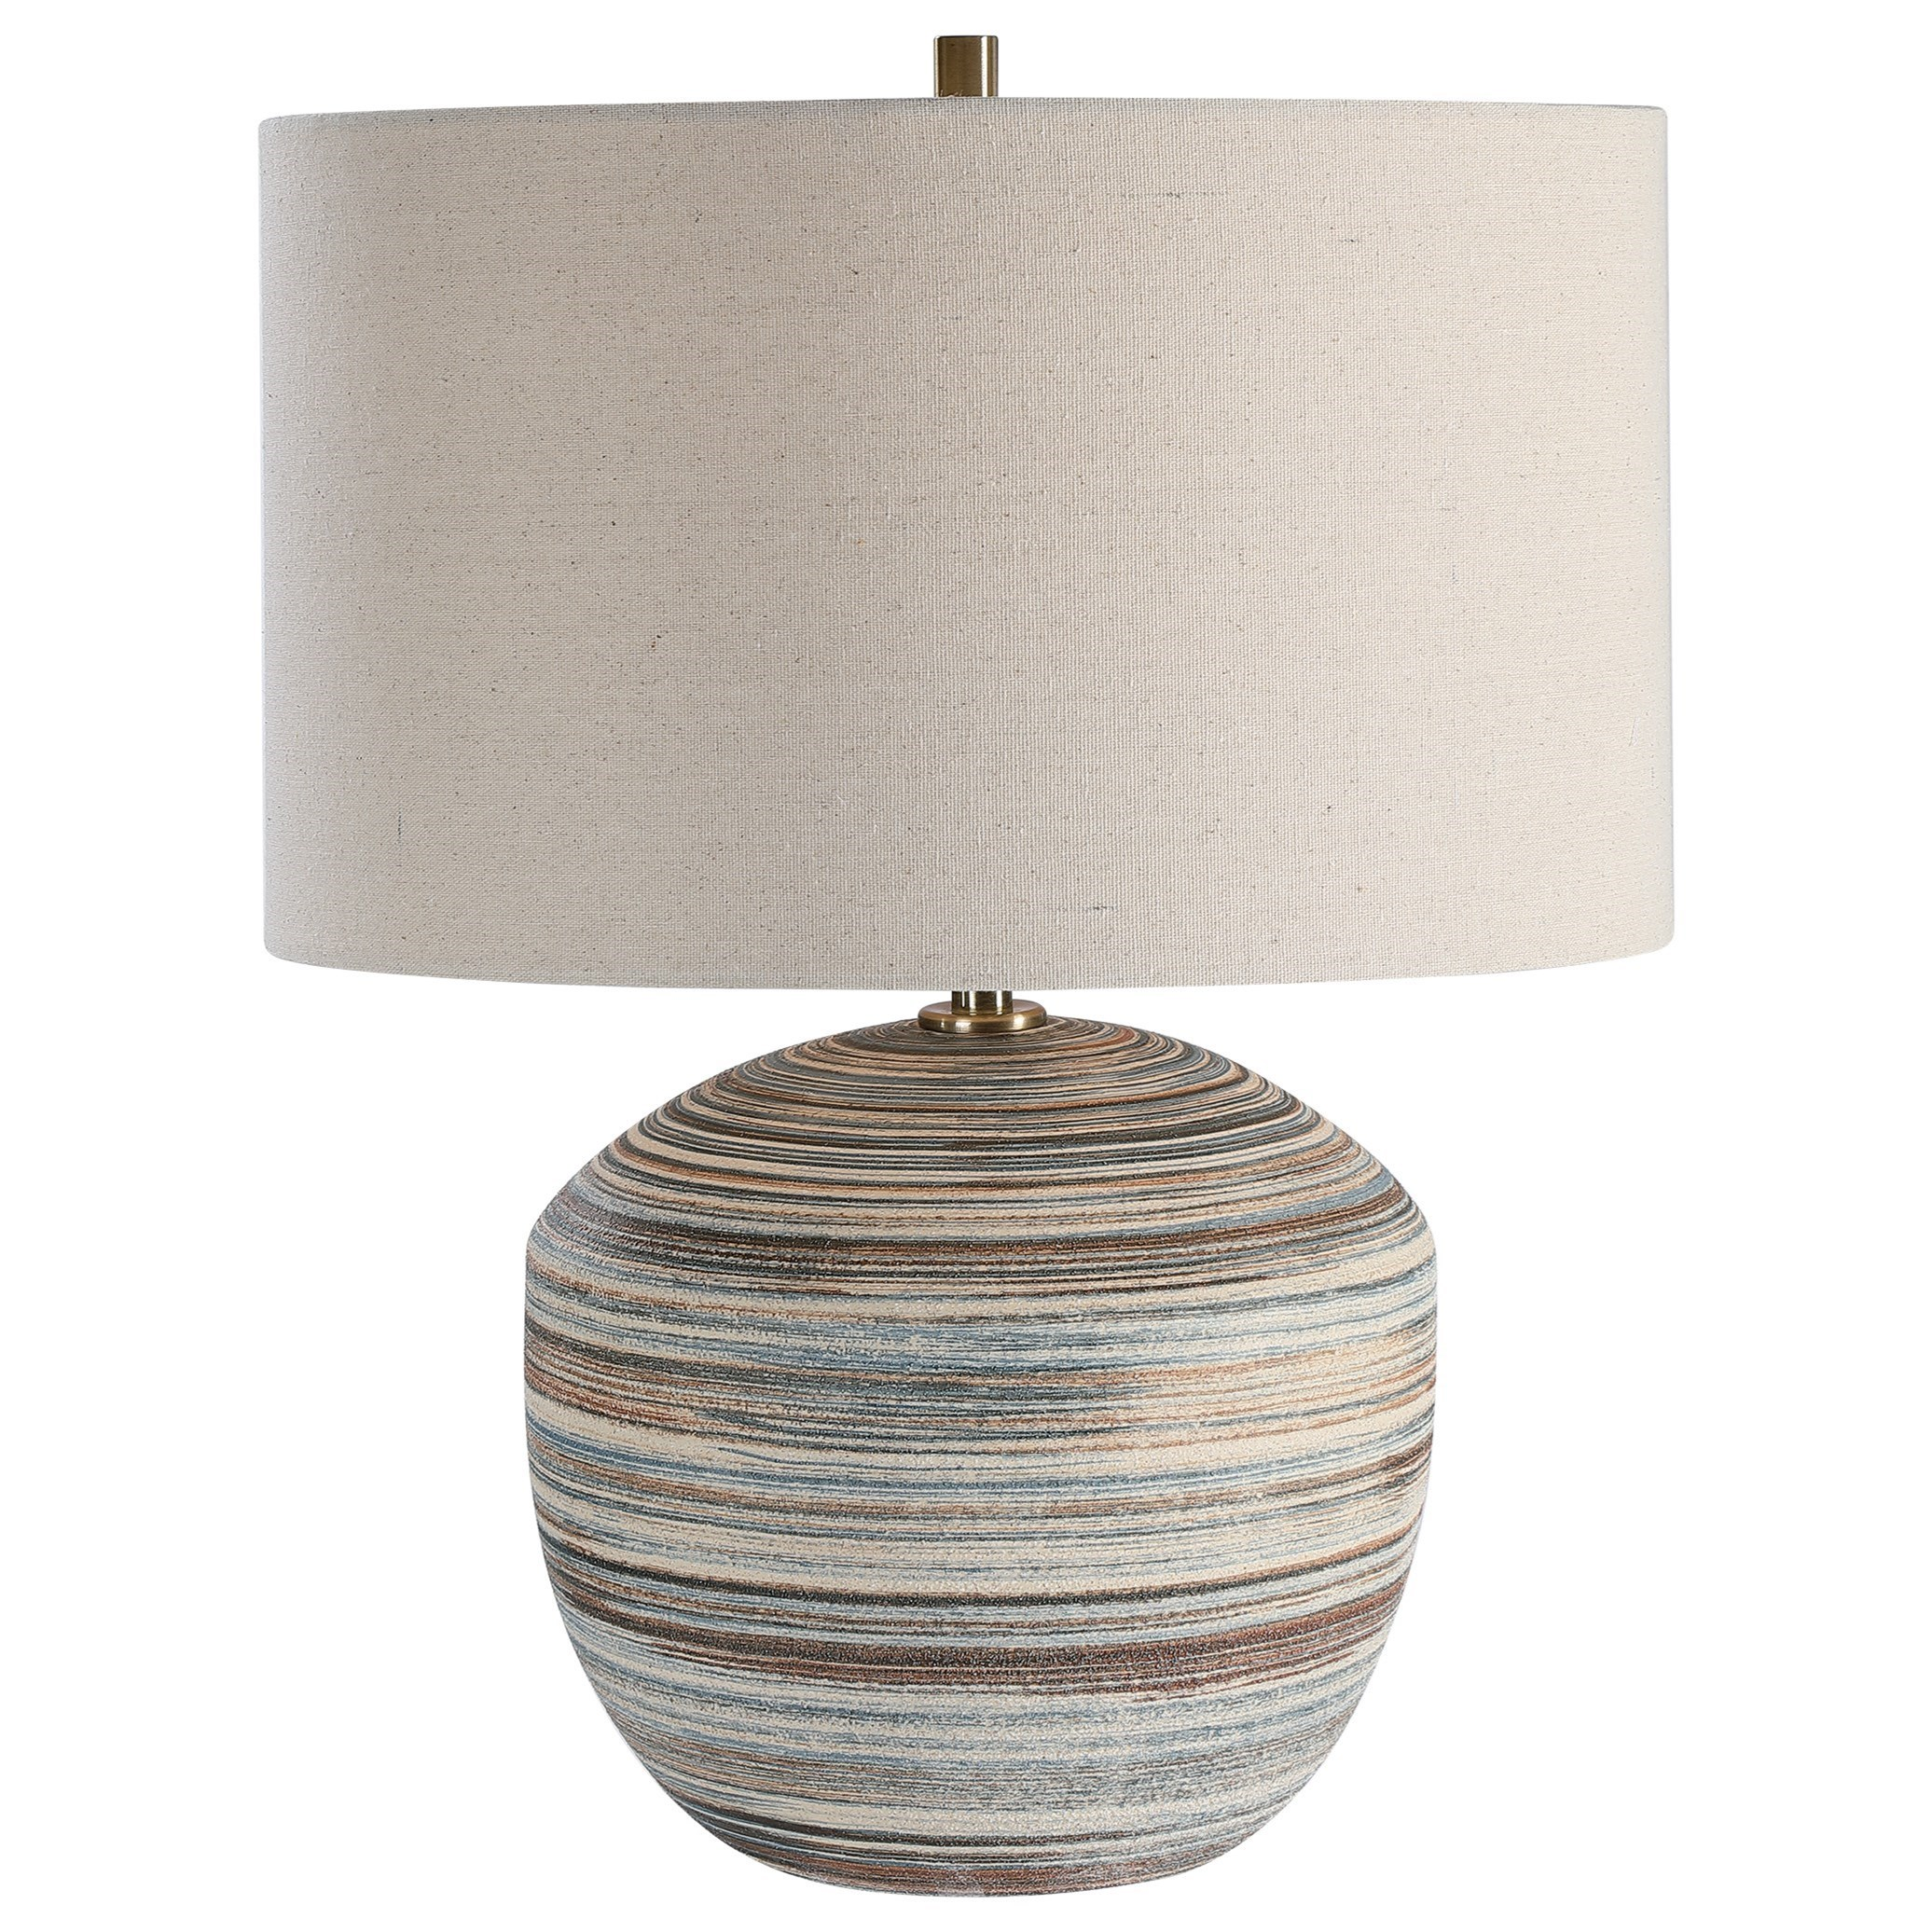 Accent Lamps Prospect Striped Accent Lamp by Uttermost at Upper Room Home Furnishings